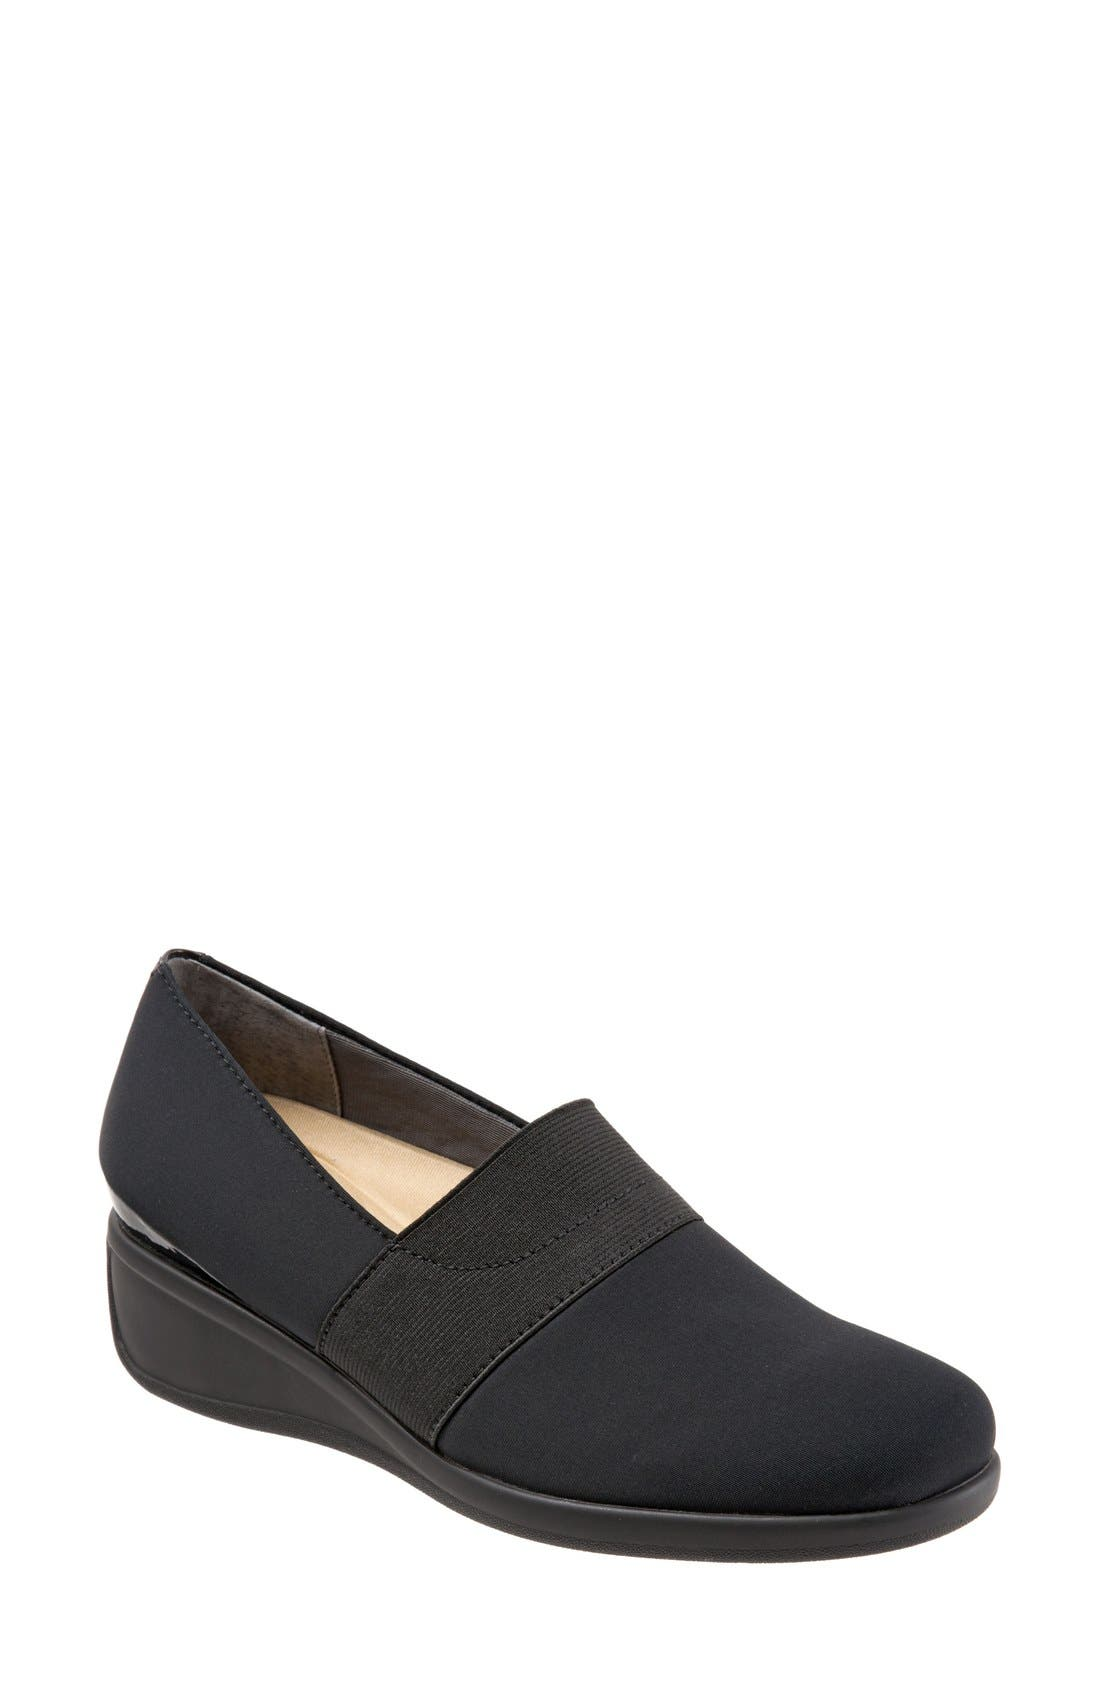 Trotters 'Marley' Slip-On Wedge Pump (Women)